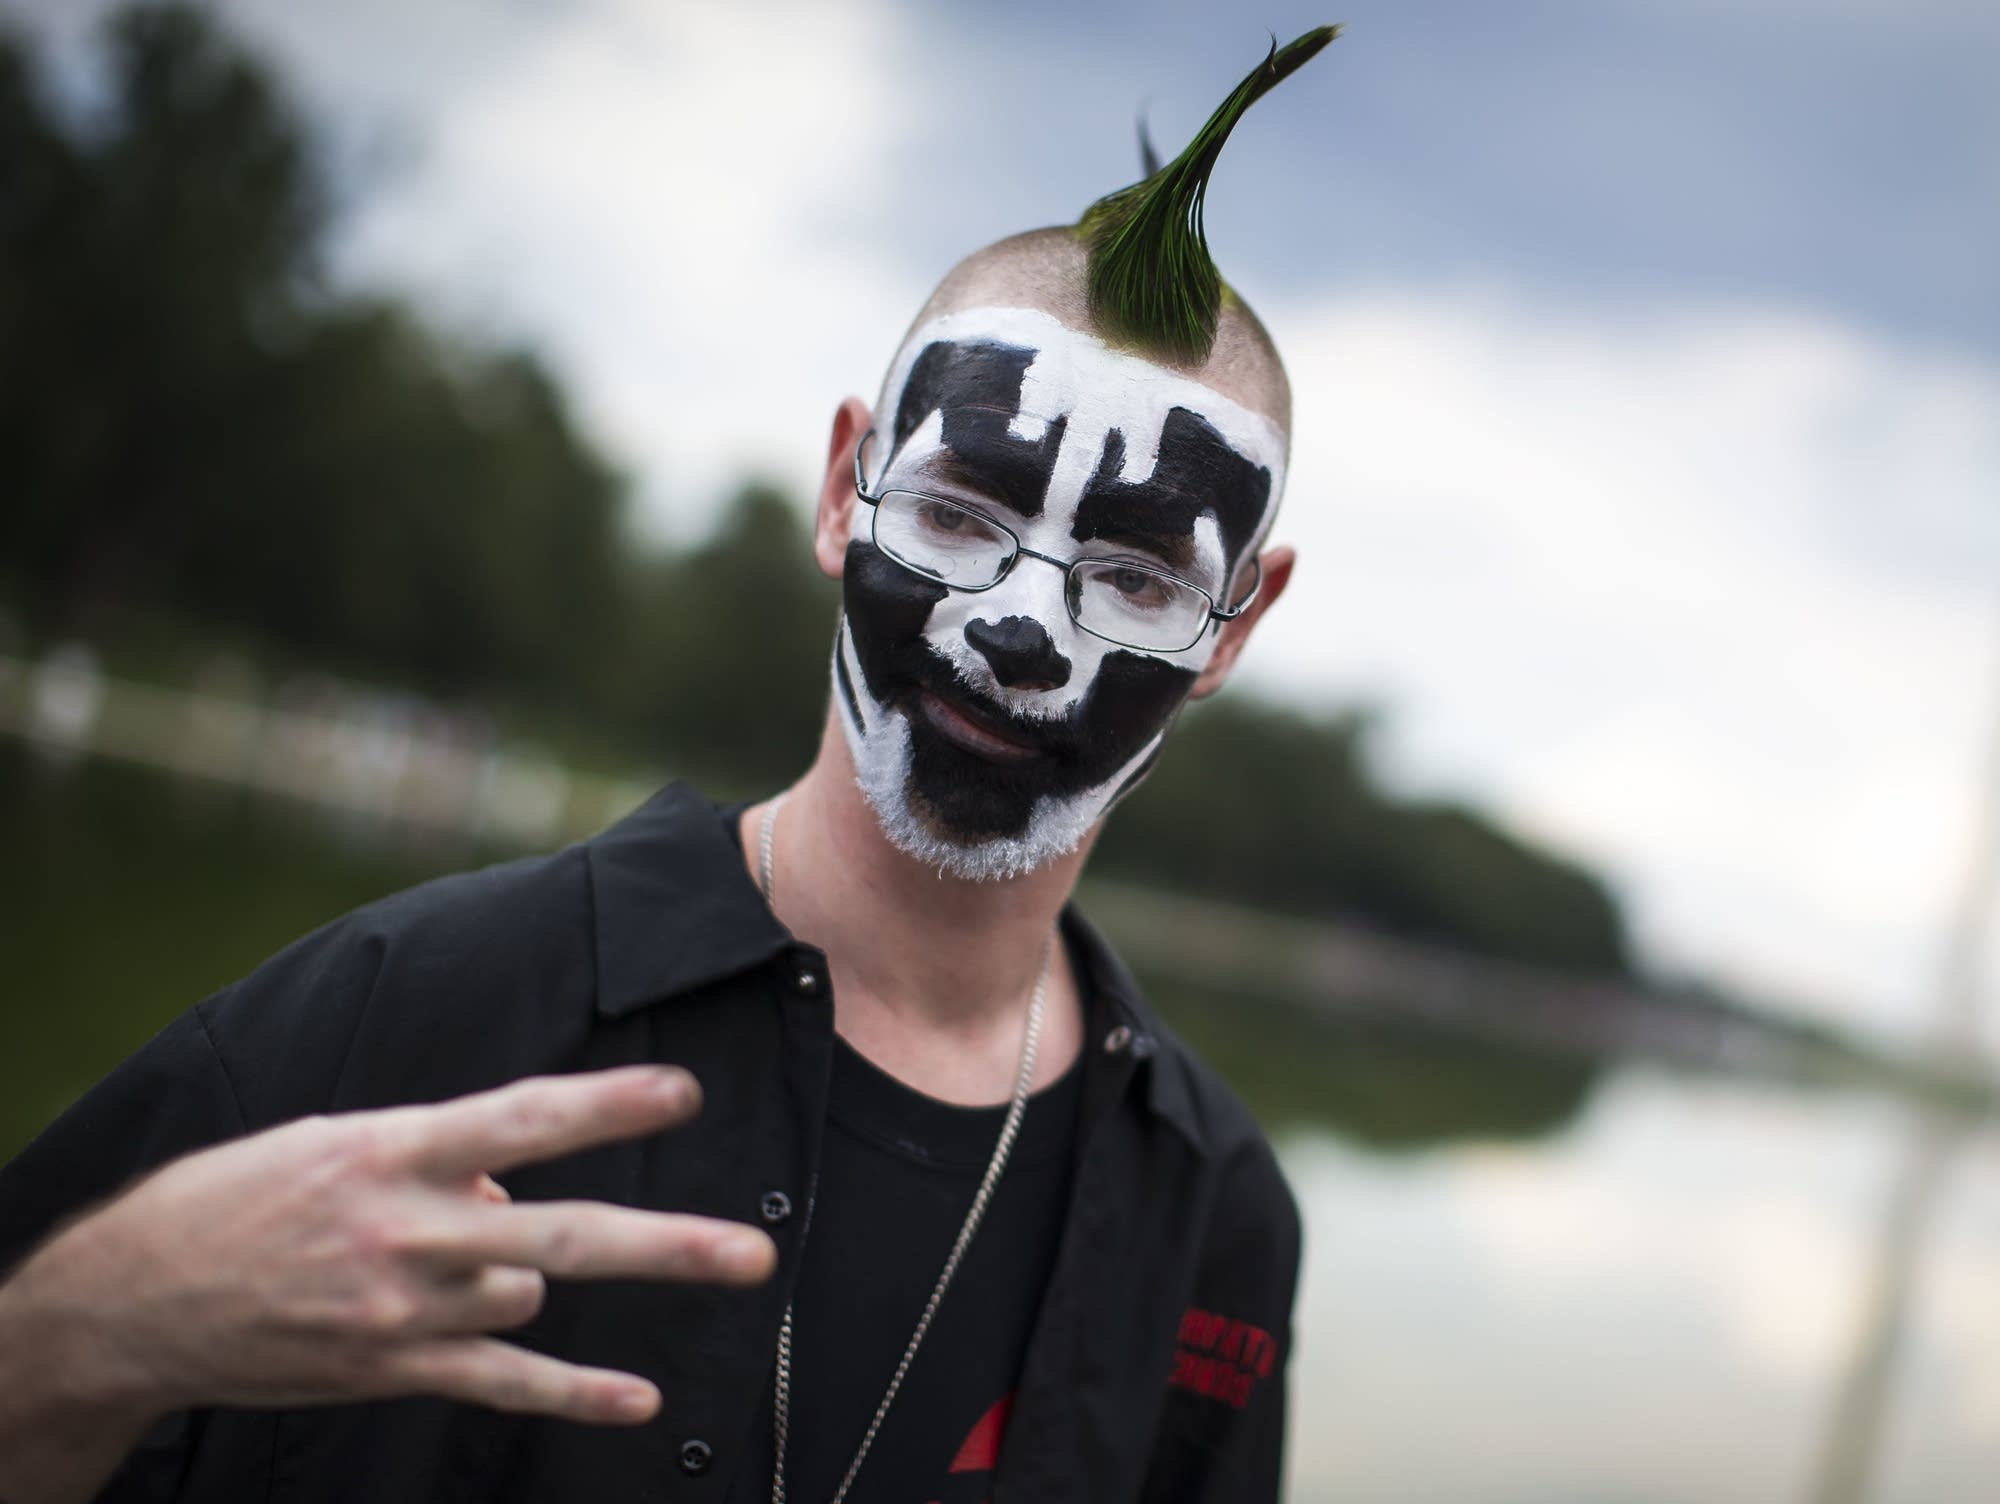 An Insane Clown Posse fan participates in the 2017 Juggalo March.